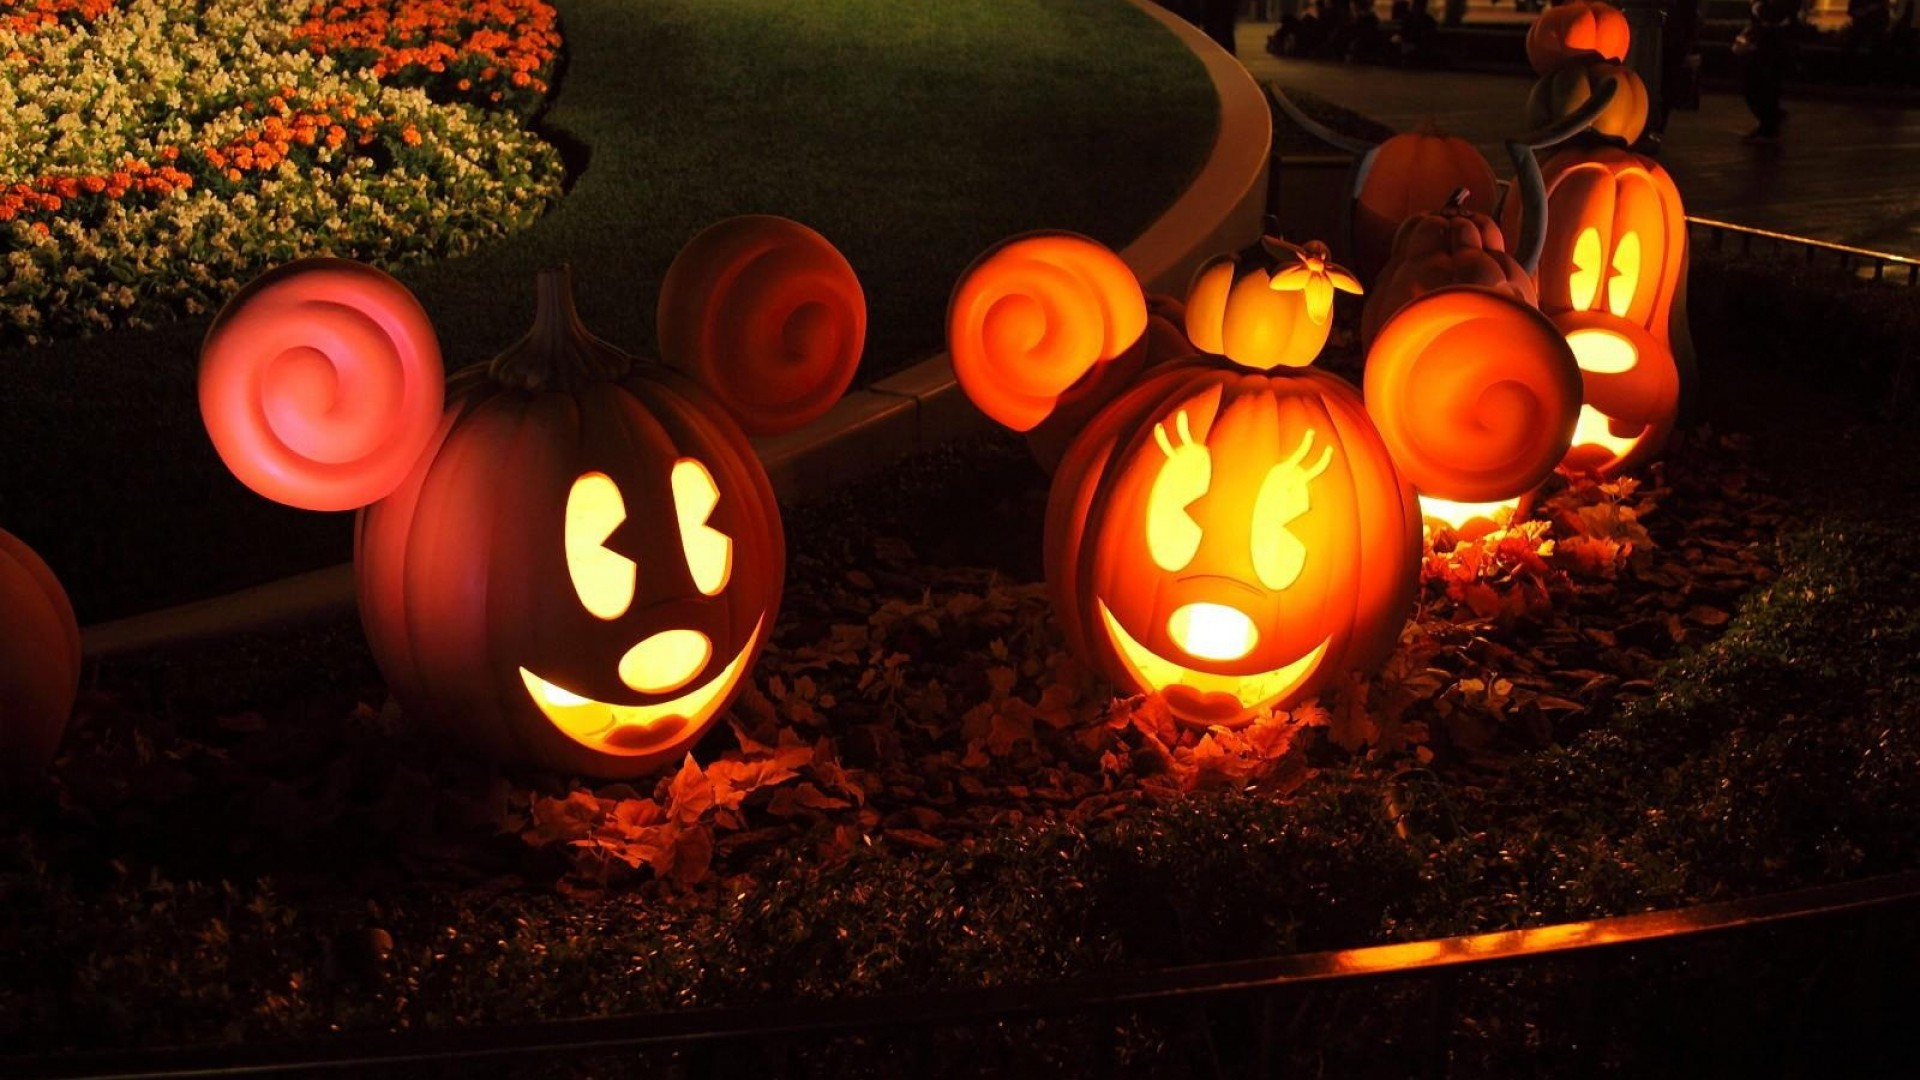 Wallpaper halloween, pumpkins, models, mickey mouse, flowerbed,  light